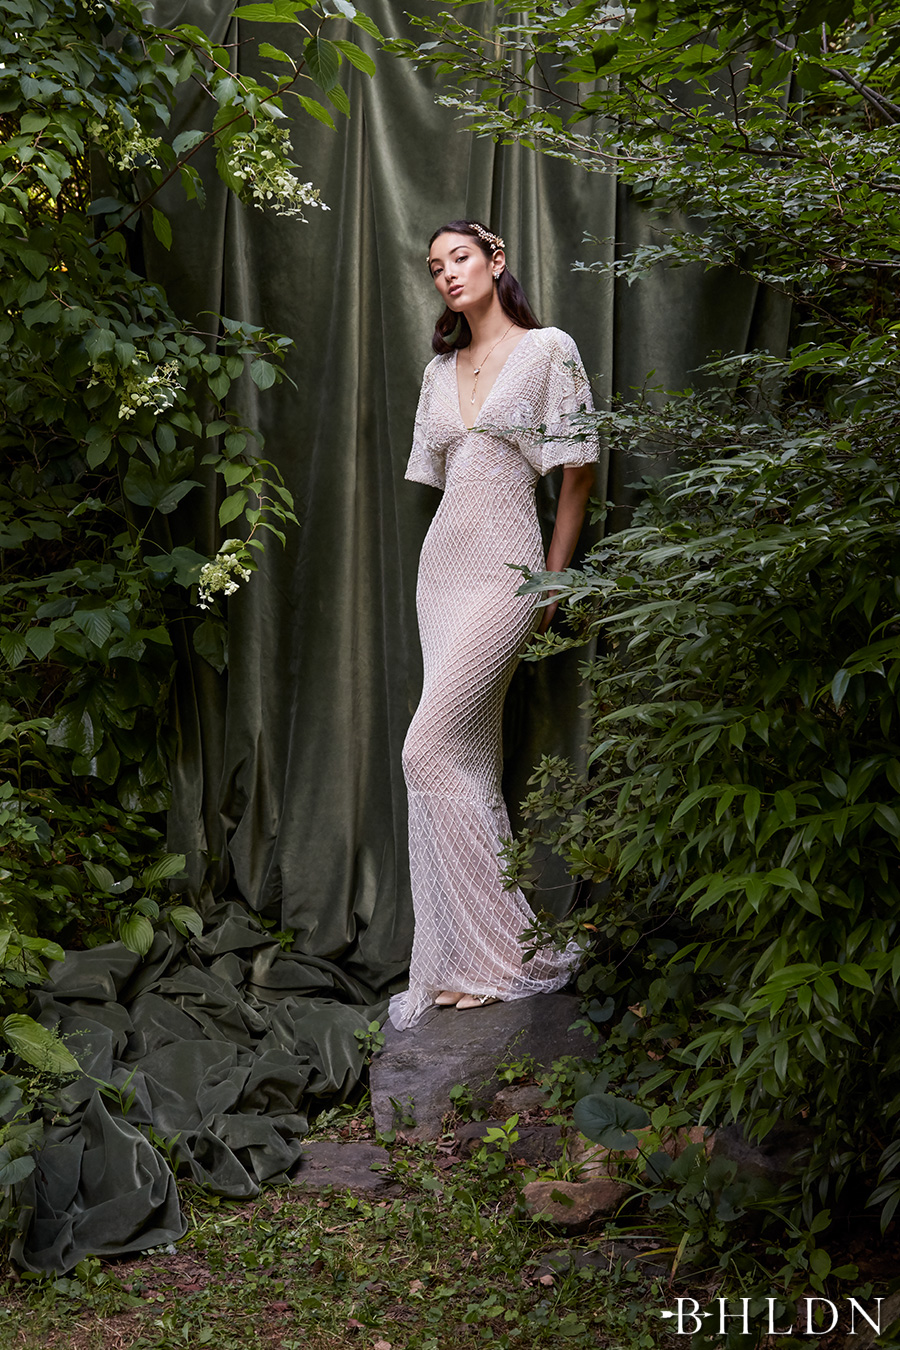 Behind the curtain bhldn s chic fall bridal collection for Wedding dresses with keyhole back